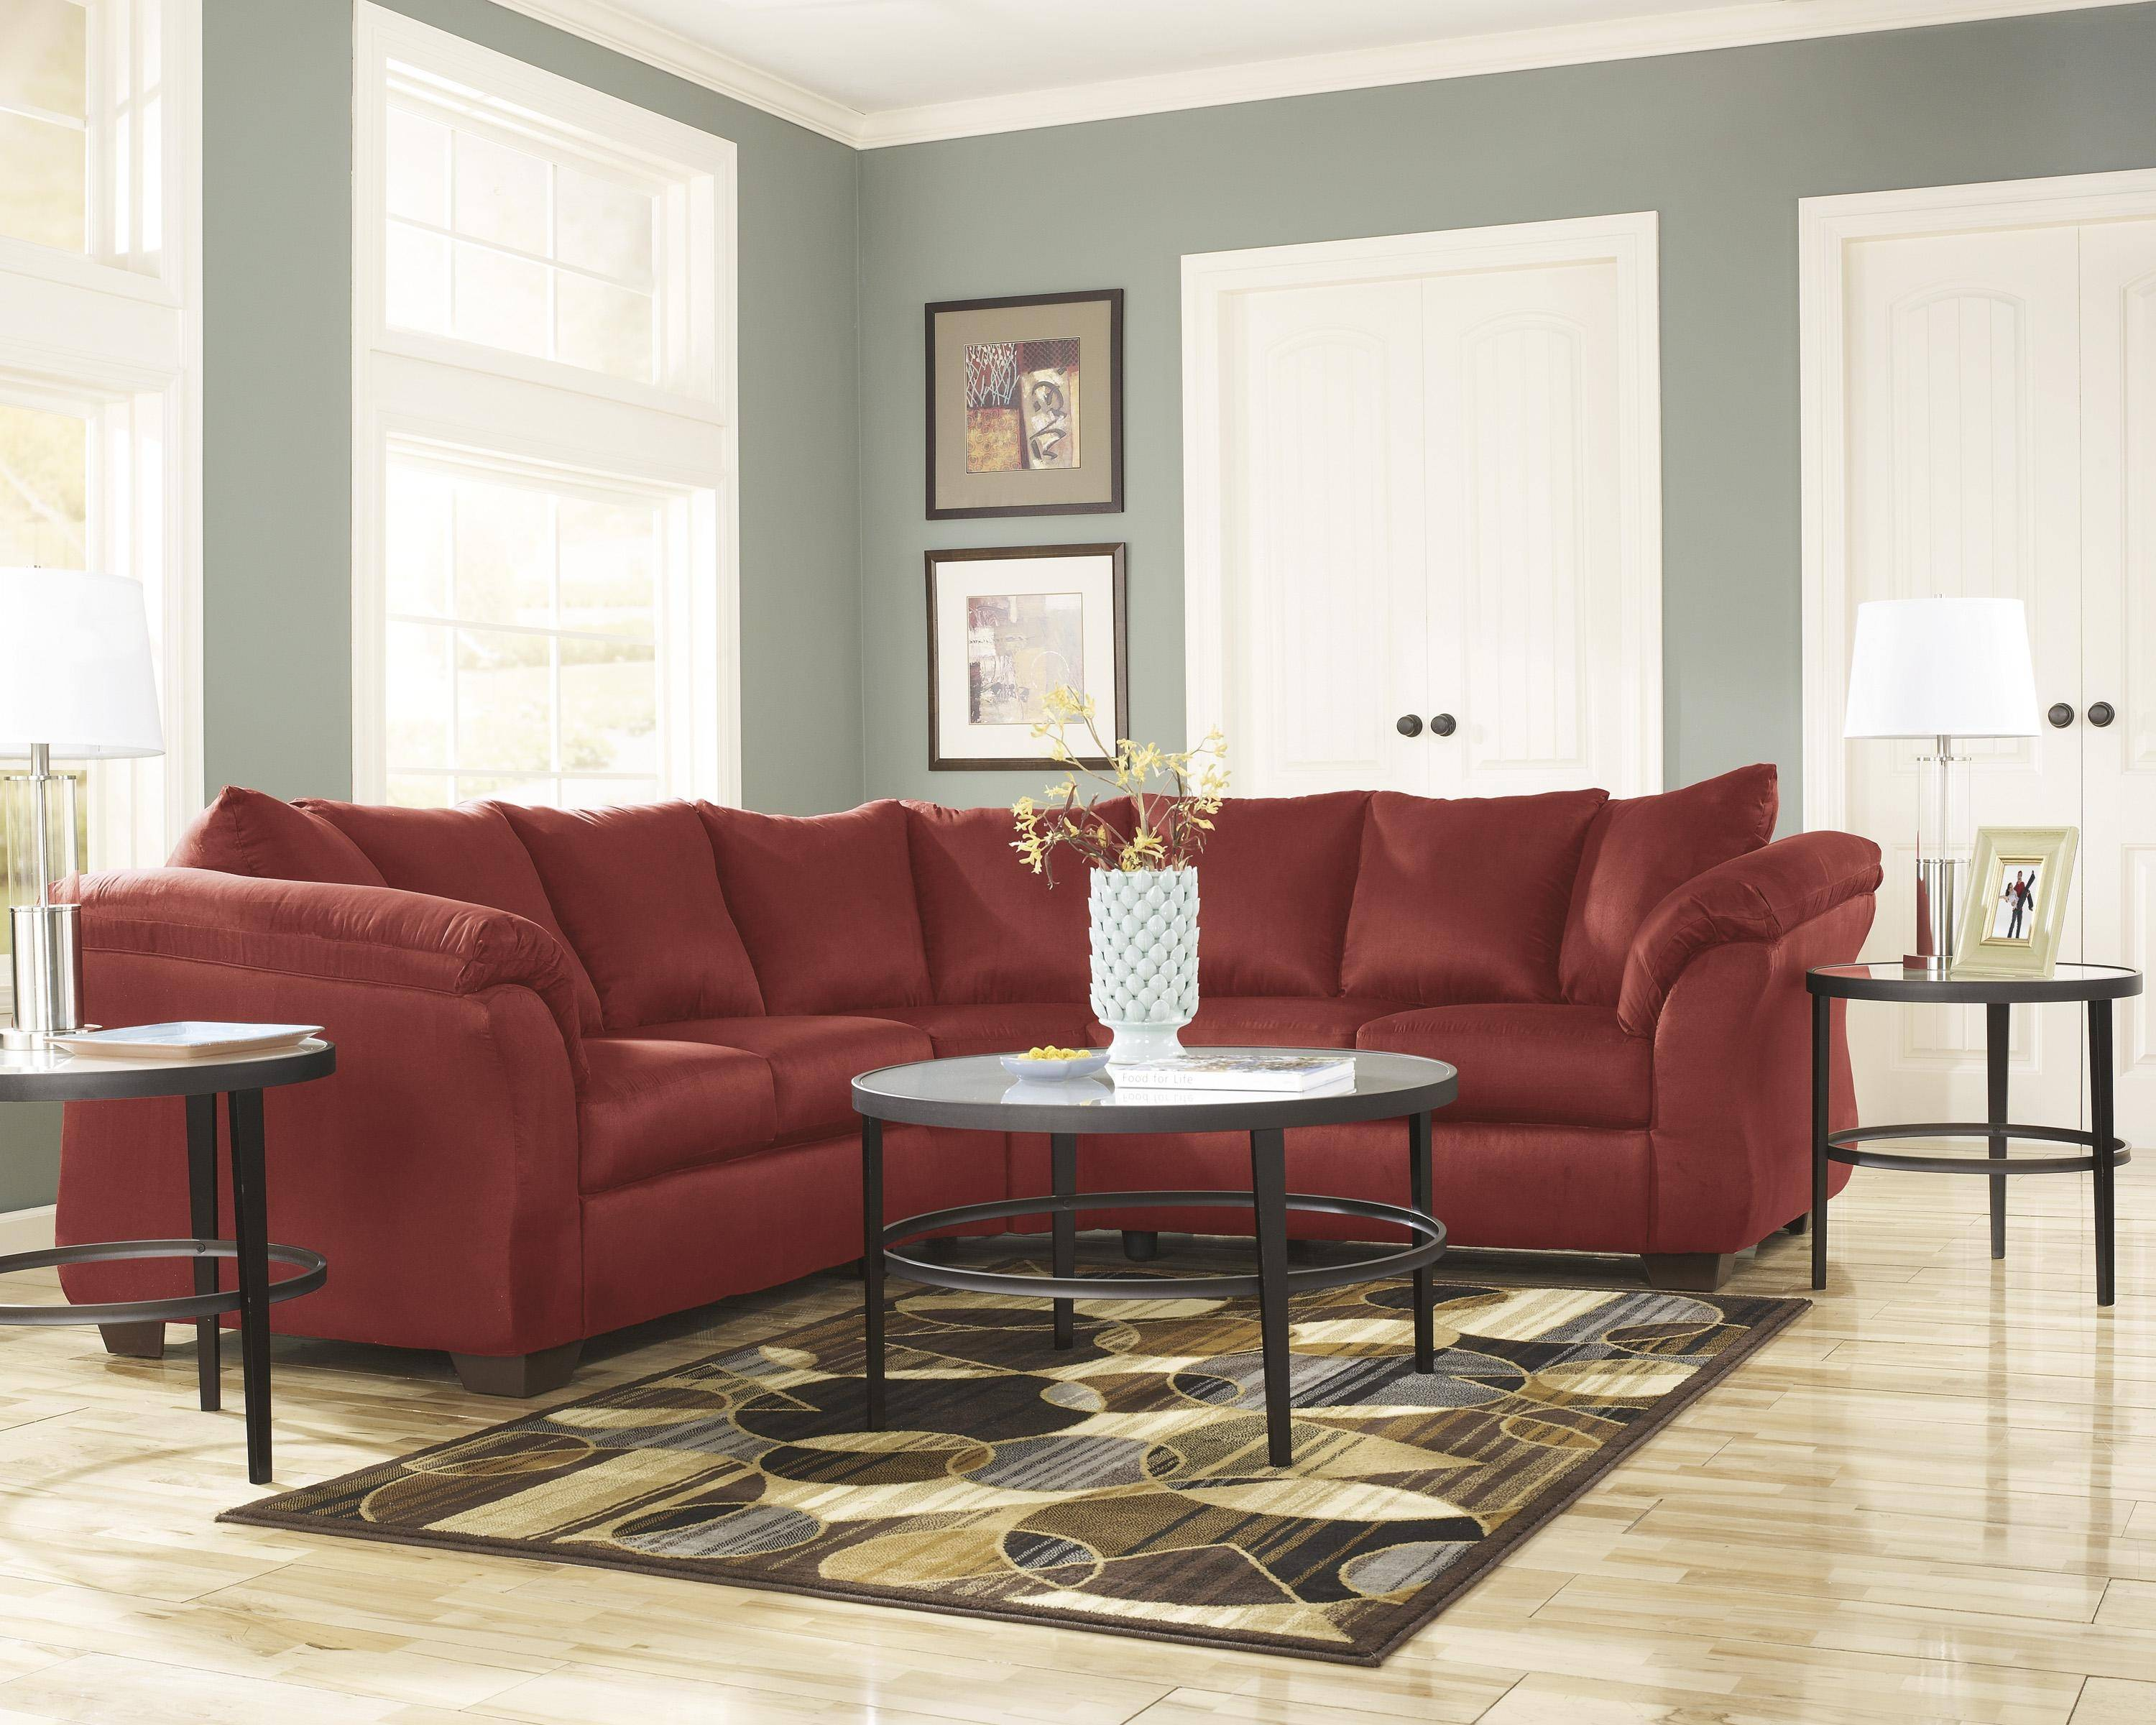 Prime Ashley Darcy 2 Piece Sectional In Salsa 75001 55 56 Kit Gmtry Best Dining Table And Chair Ideas Images Gmtryco